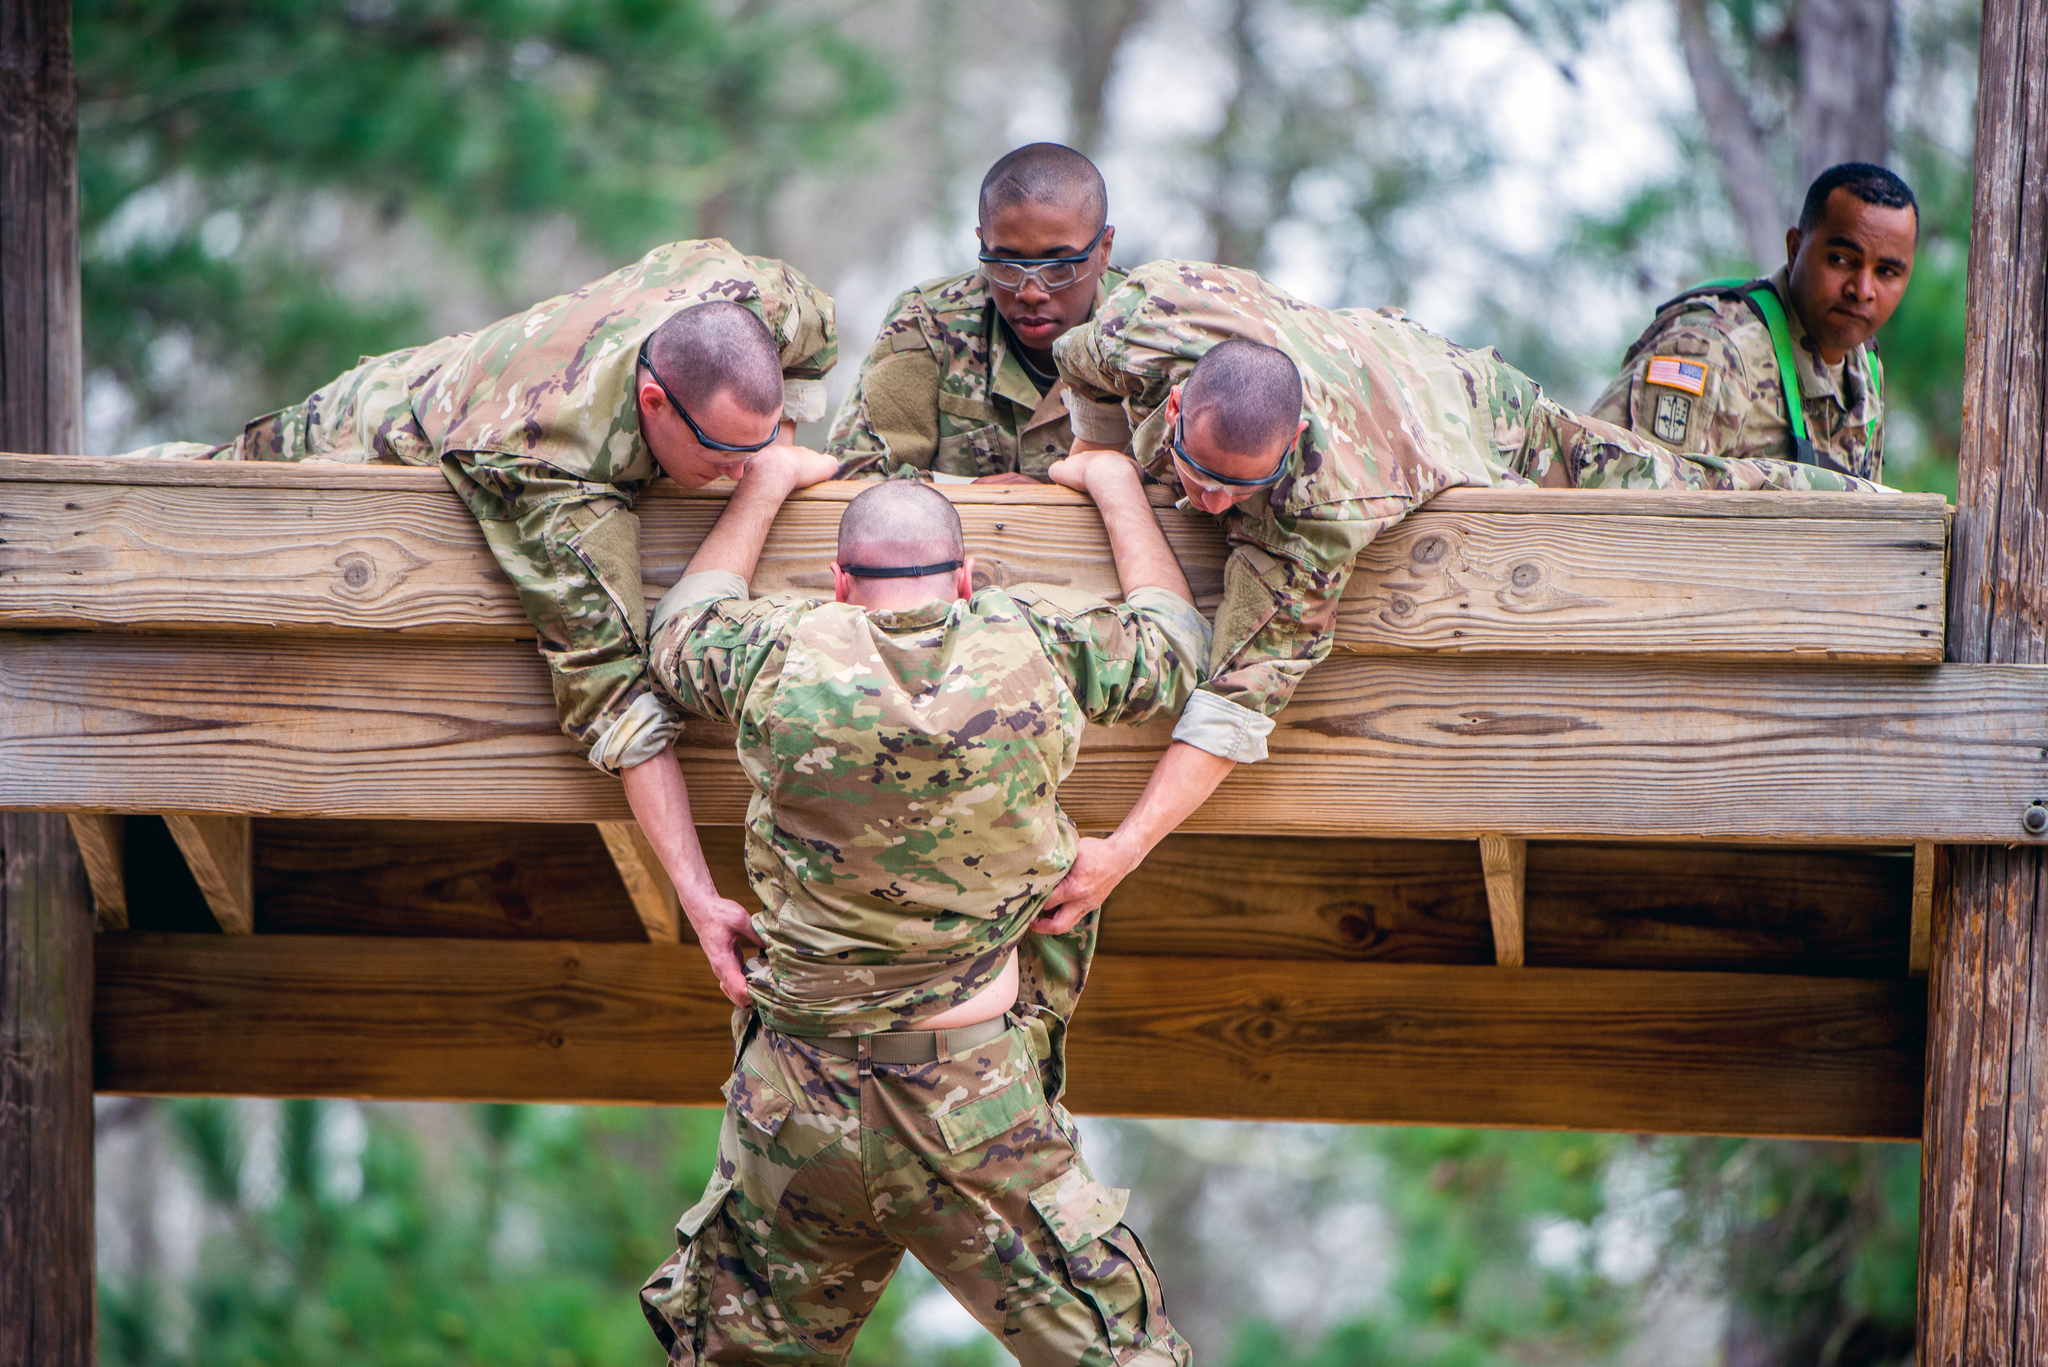 Trainees negotiate a confidence course on Feb. 27, 2019, at Sand Hill on Fort Benning, Ga. (Patrick Albright/Army)